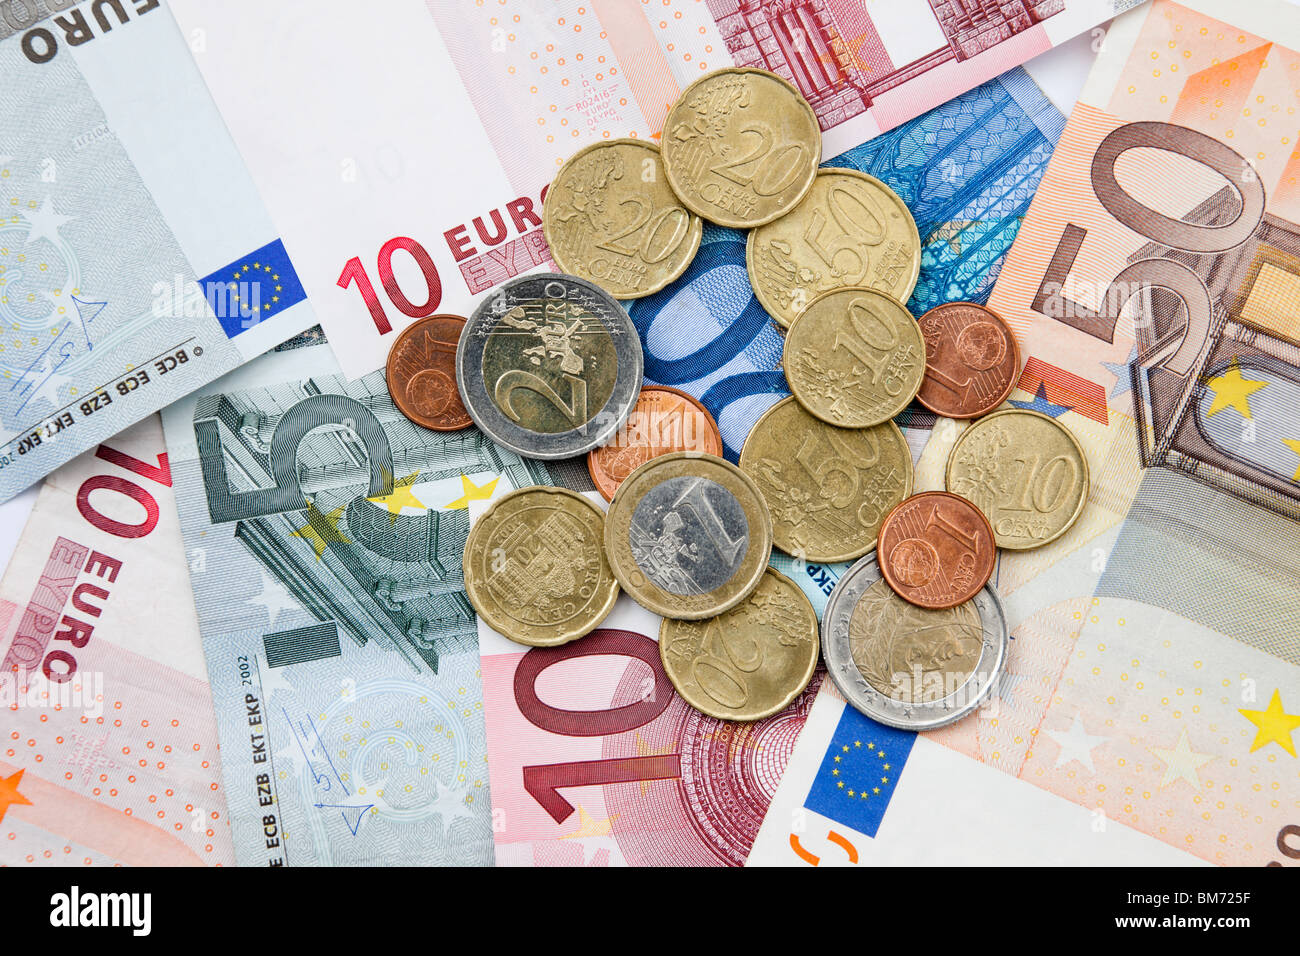 Euro notes and coins in various denominations from the European Union. Europe. - Stock Image